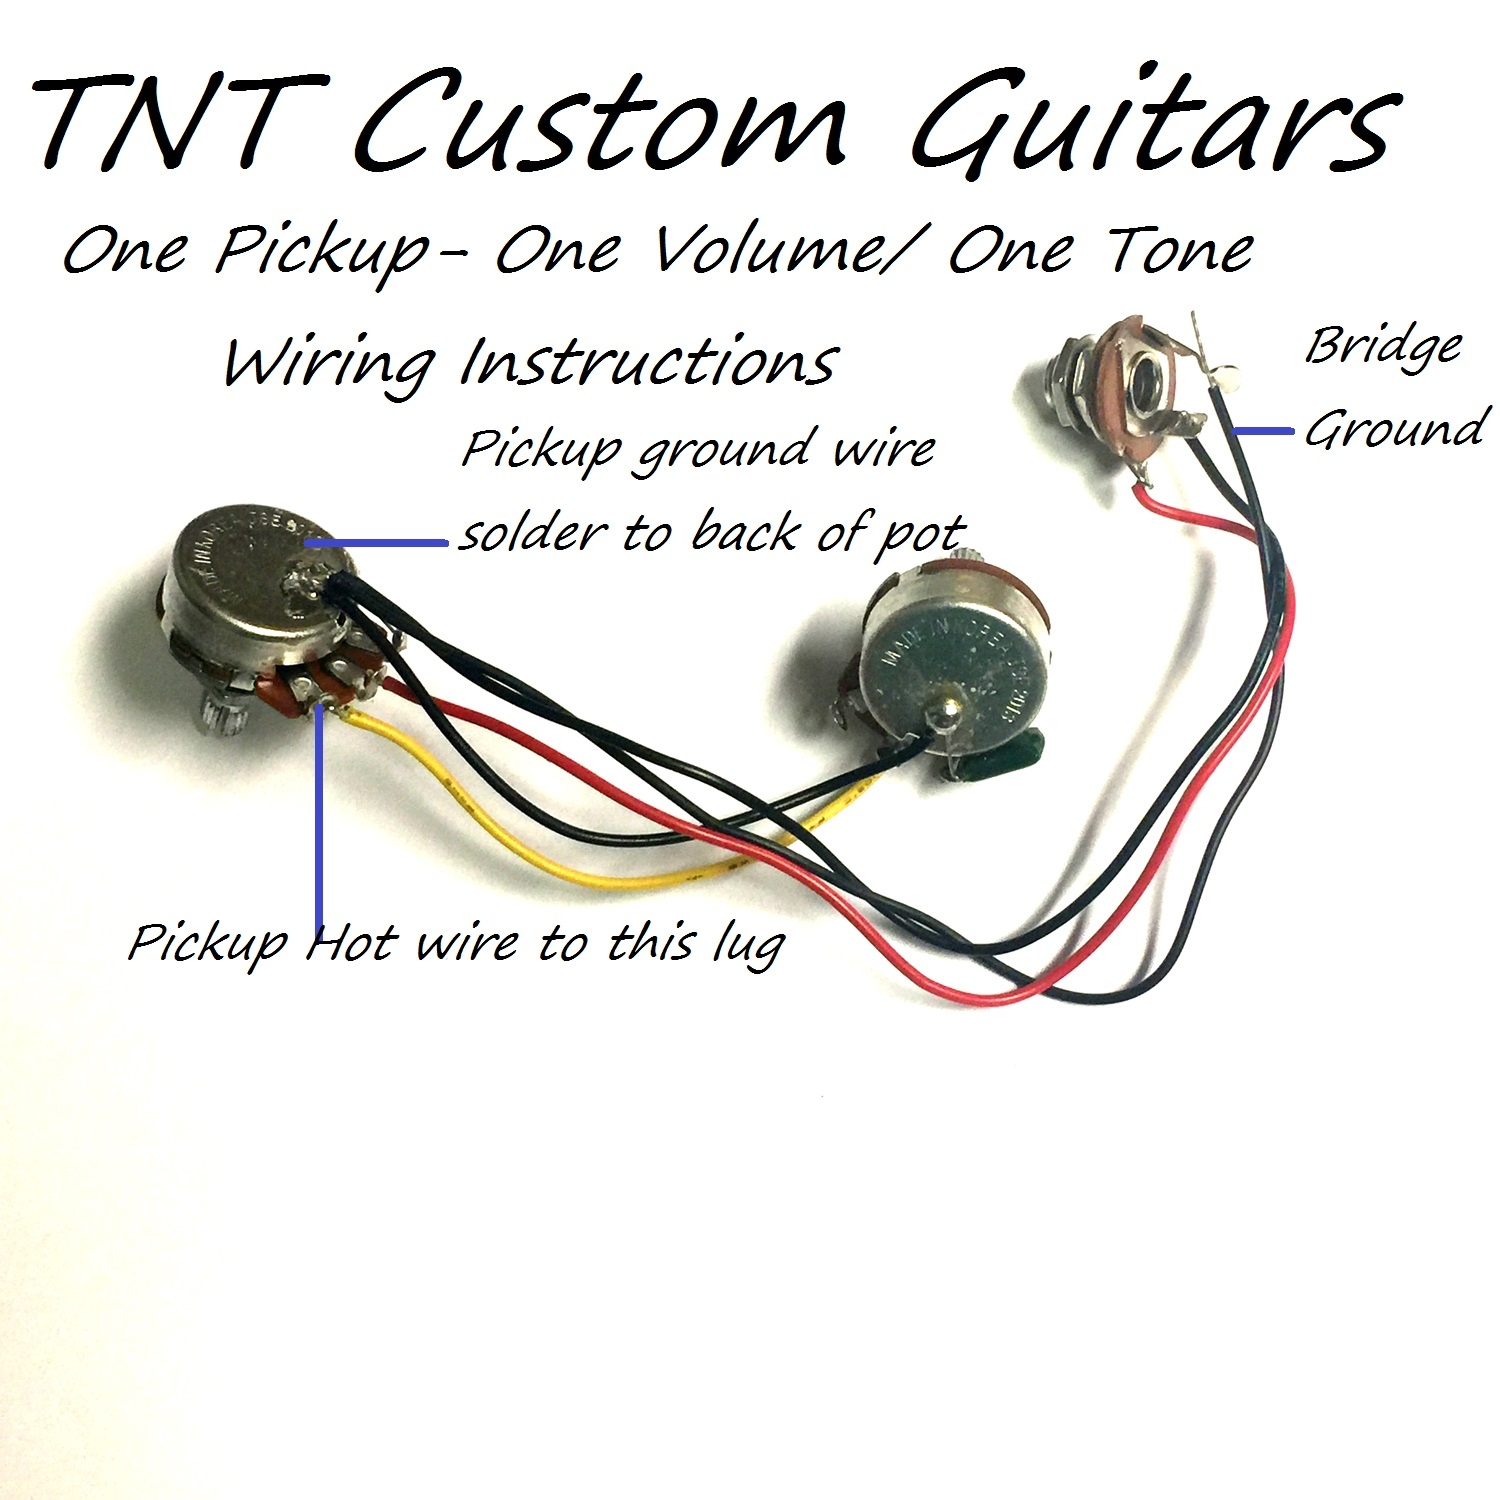 Wiring Diagrams For Guitar Wiring Harness Wiring Diagram Wiring On